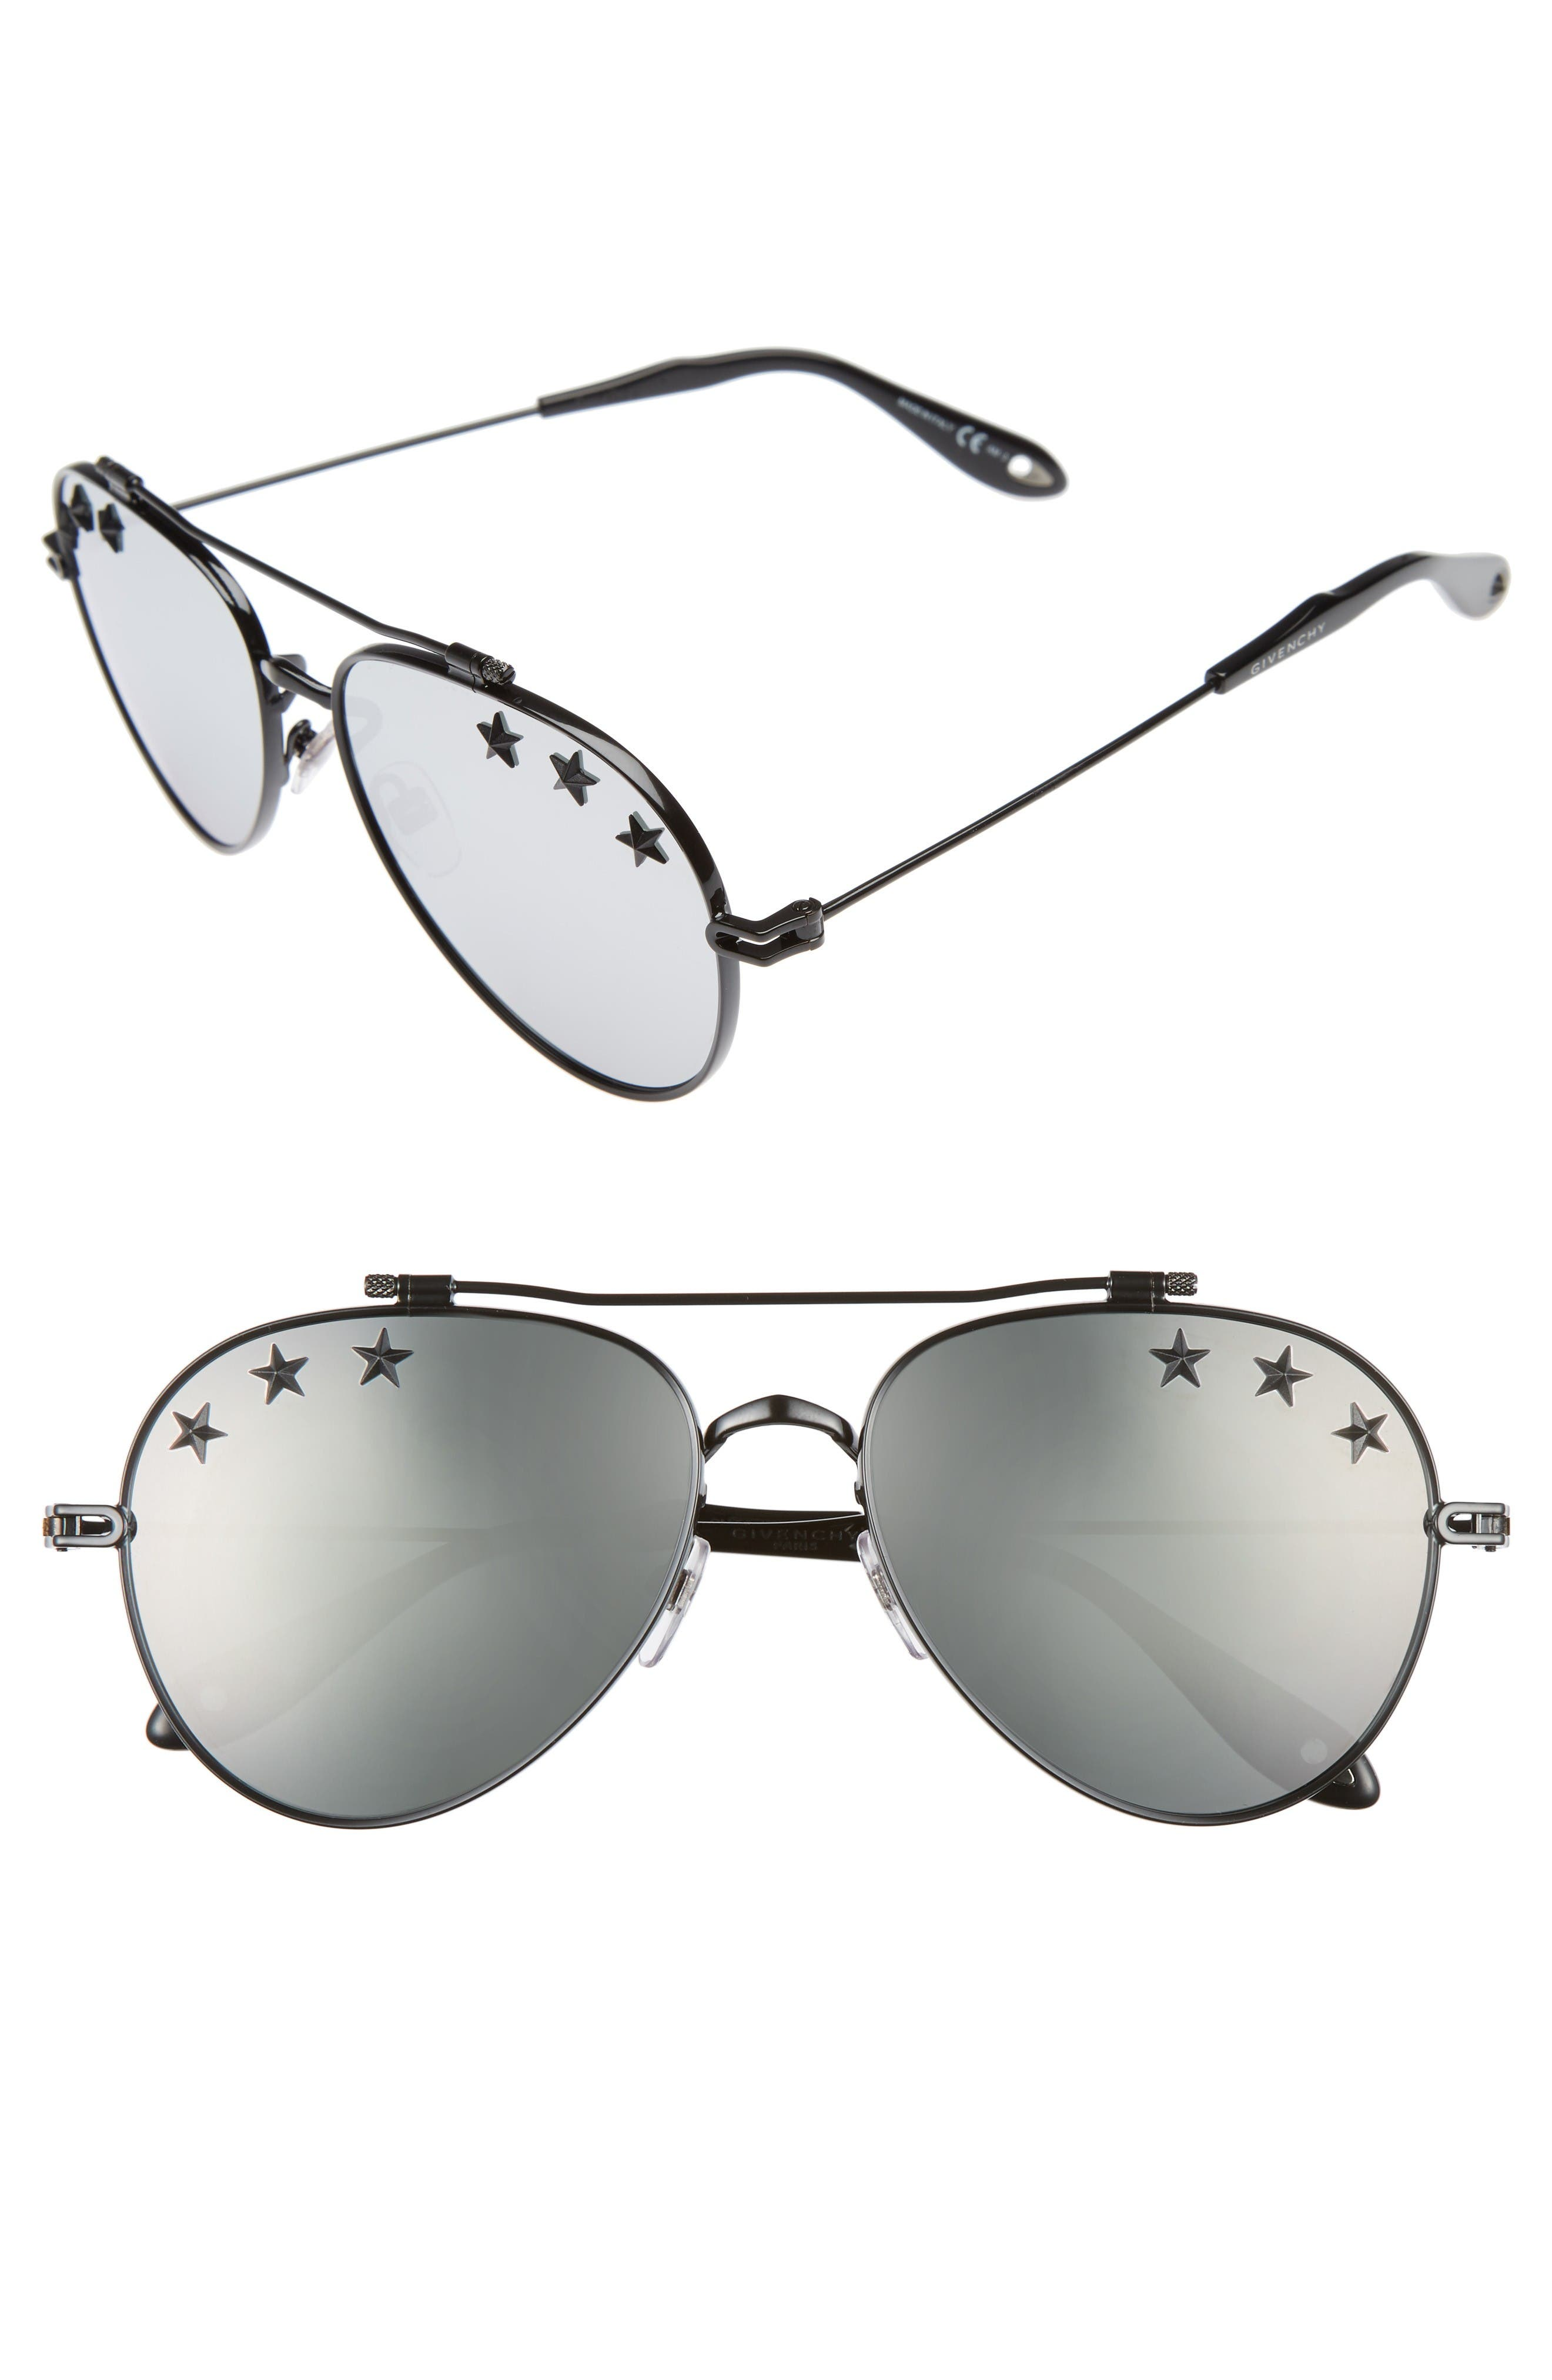 Main Image - Givenchy Stars 58mm Aviator Sunglasses